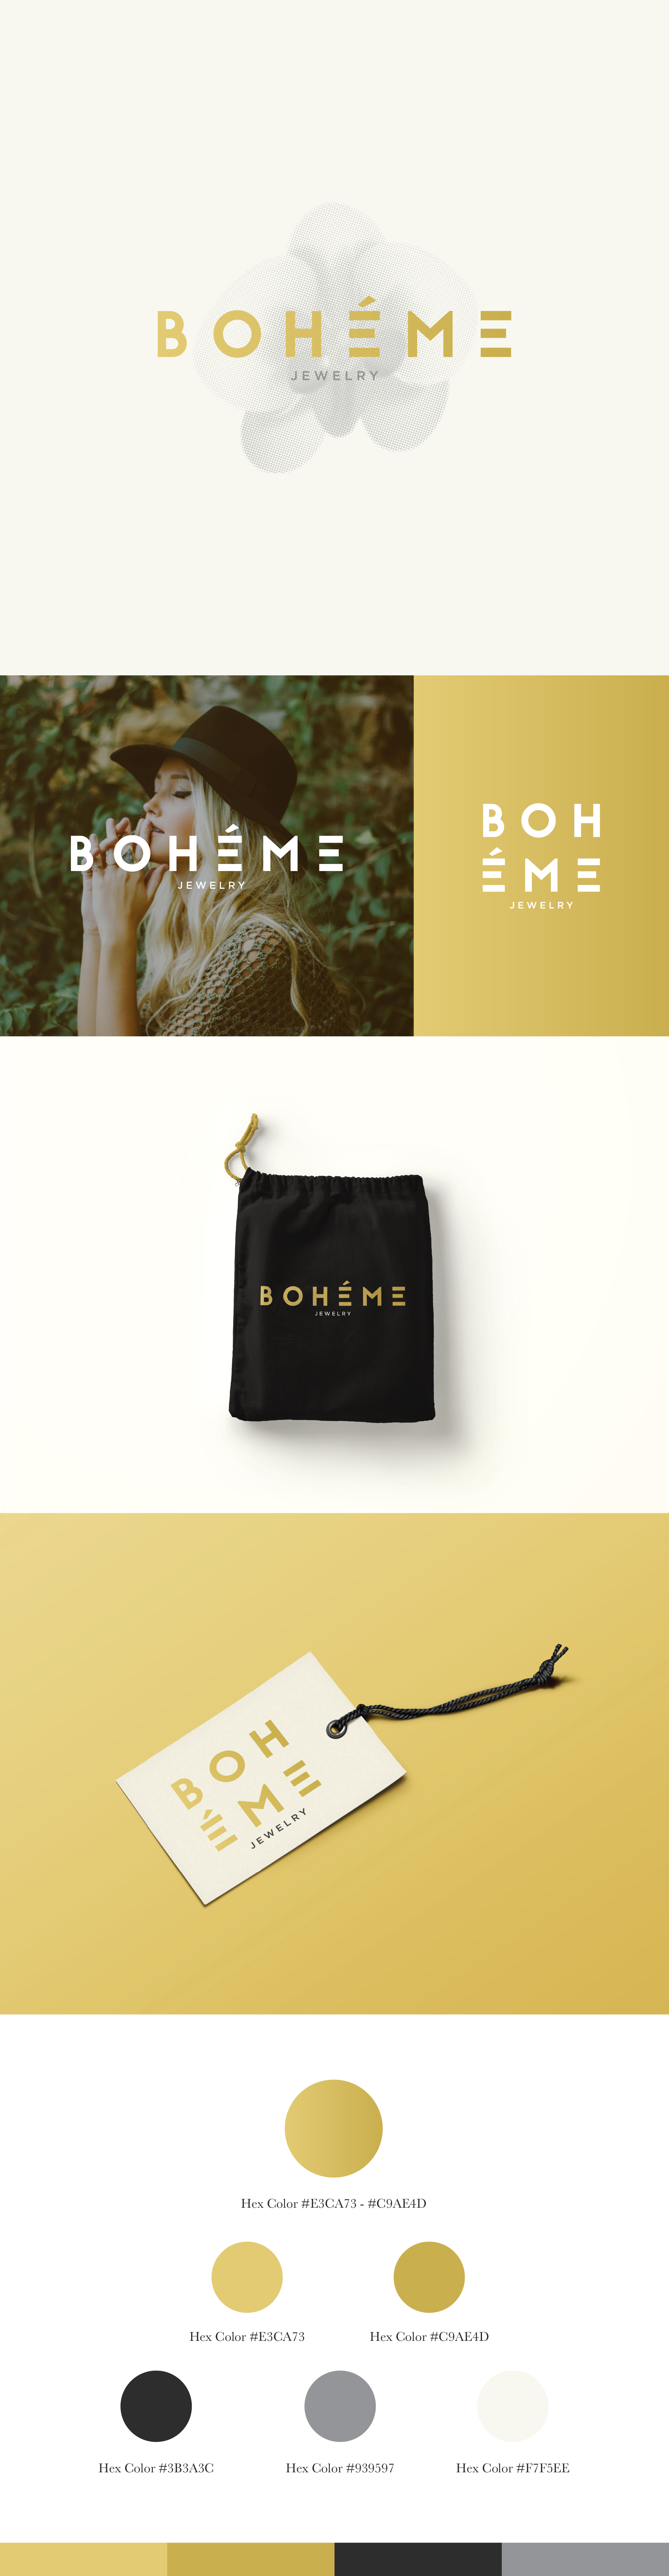 Boheme Jewelry Logo and Identity K. Karnes Designs